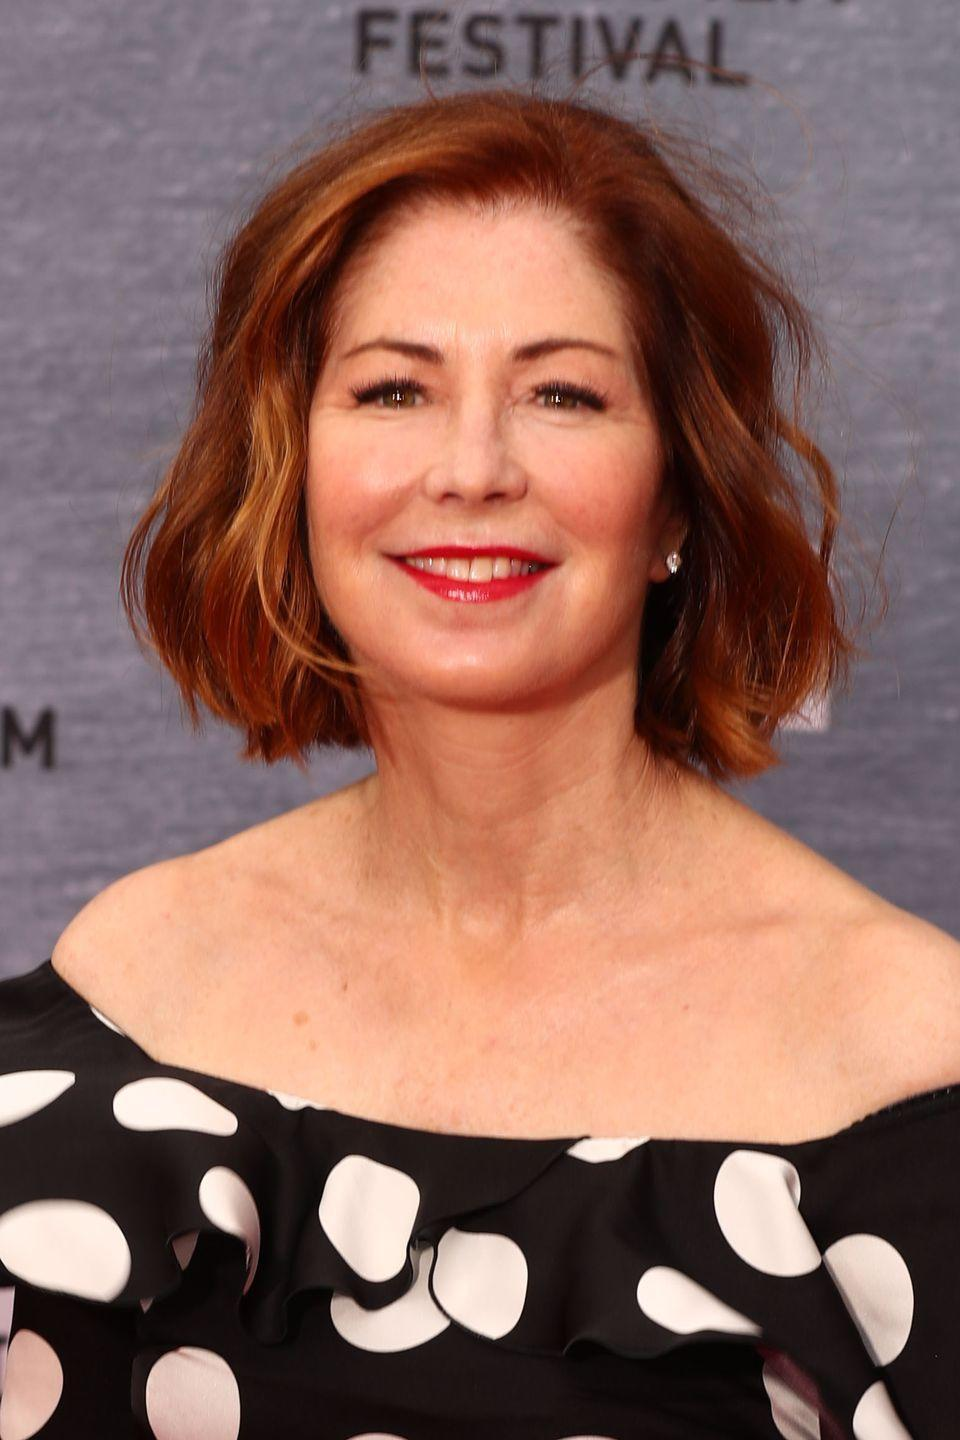 "<p>Ever since a botched botox injection, <em>Desperate Housewives </em>actor Dana Delany won't undergo any cosmetic surgery or enhancement. ""My dermatologist was saying, 'You should try it.' He injected my forehead, hit a nerve, and created a huge hematoma,"" <a href=""https://people.com/style/dana-delany-recalls-her-botox-and-eating-disorder-nightmares/"" rel=""nofollow noopener"" target=""_blank"" data-ylk=""slk:she said"" class=""link rapid-noclick-resp"">she said</a>. ""The nerve has been dead ever since. It affected the muscle in my right eye, so my eye has started to droop a little bit.""</p>"